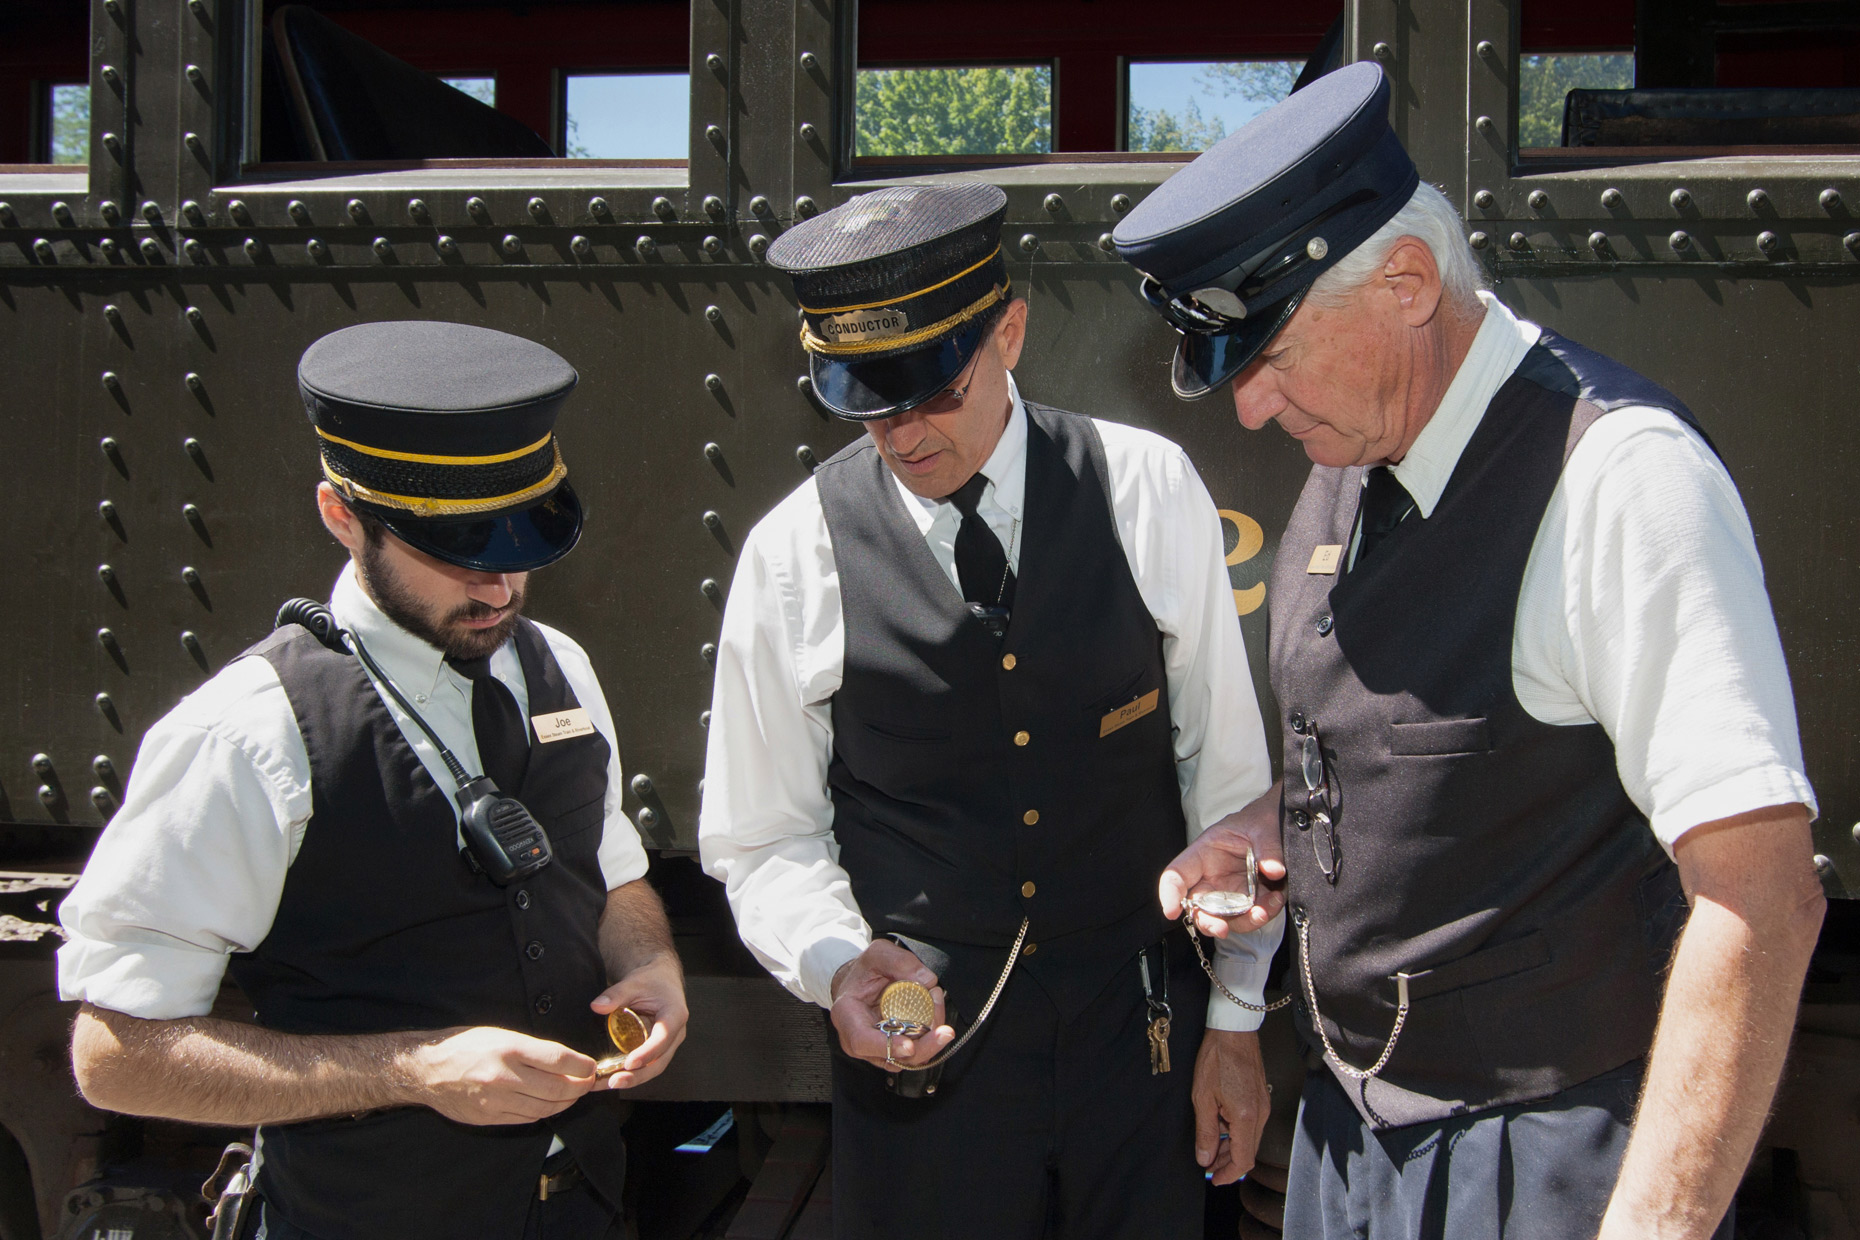 Photography-of-Railroad-Conductors-Essex-Steam-Train-Caryn-B-Davis